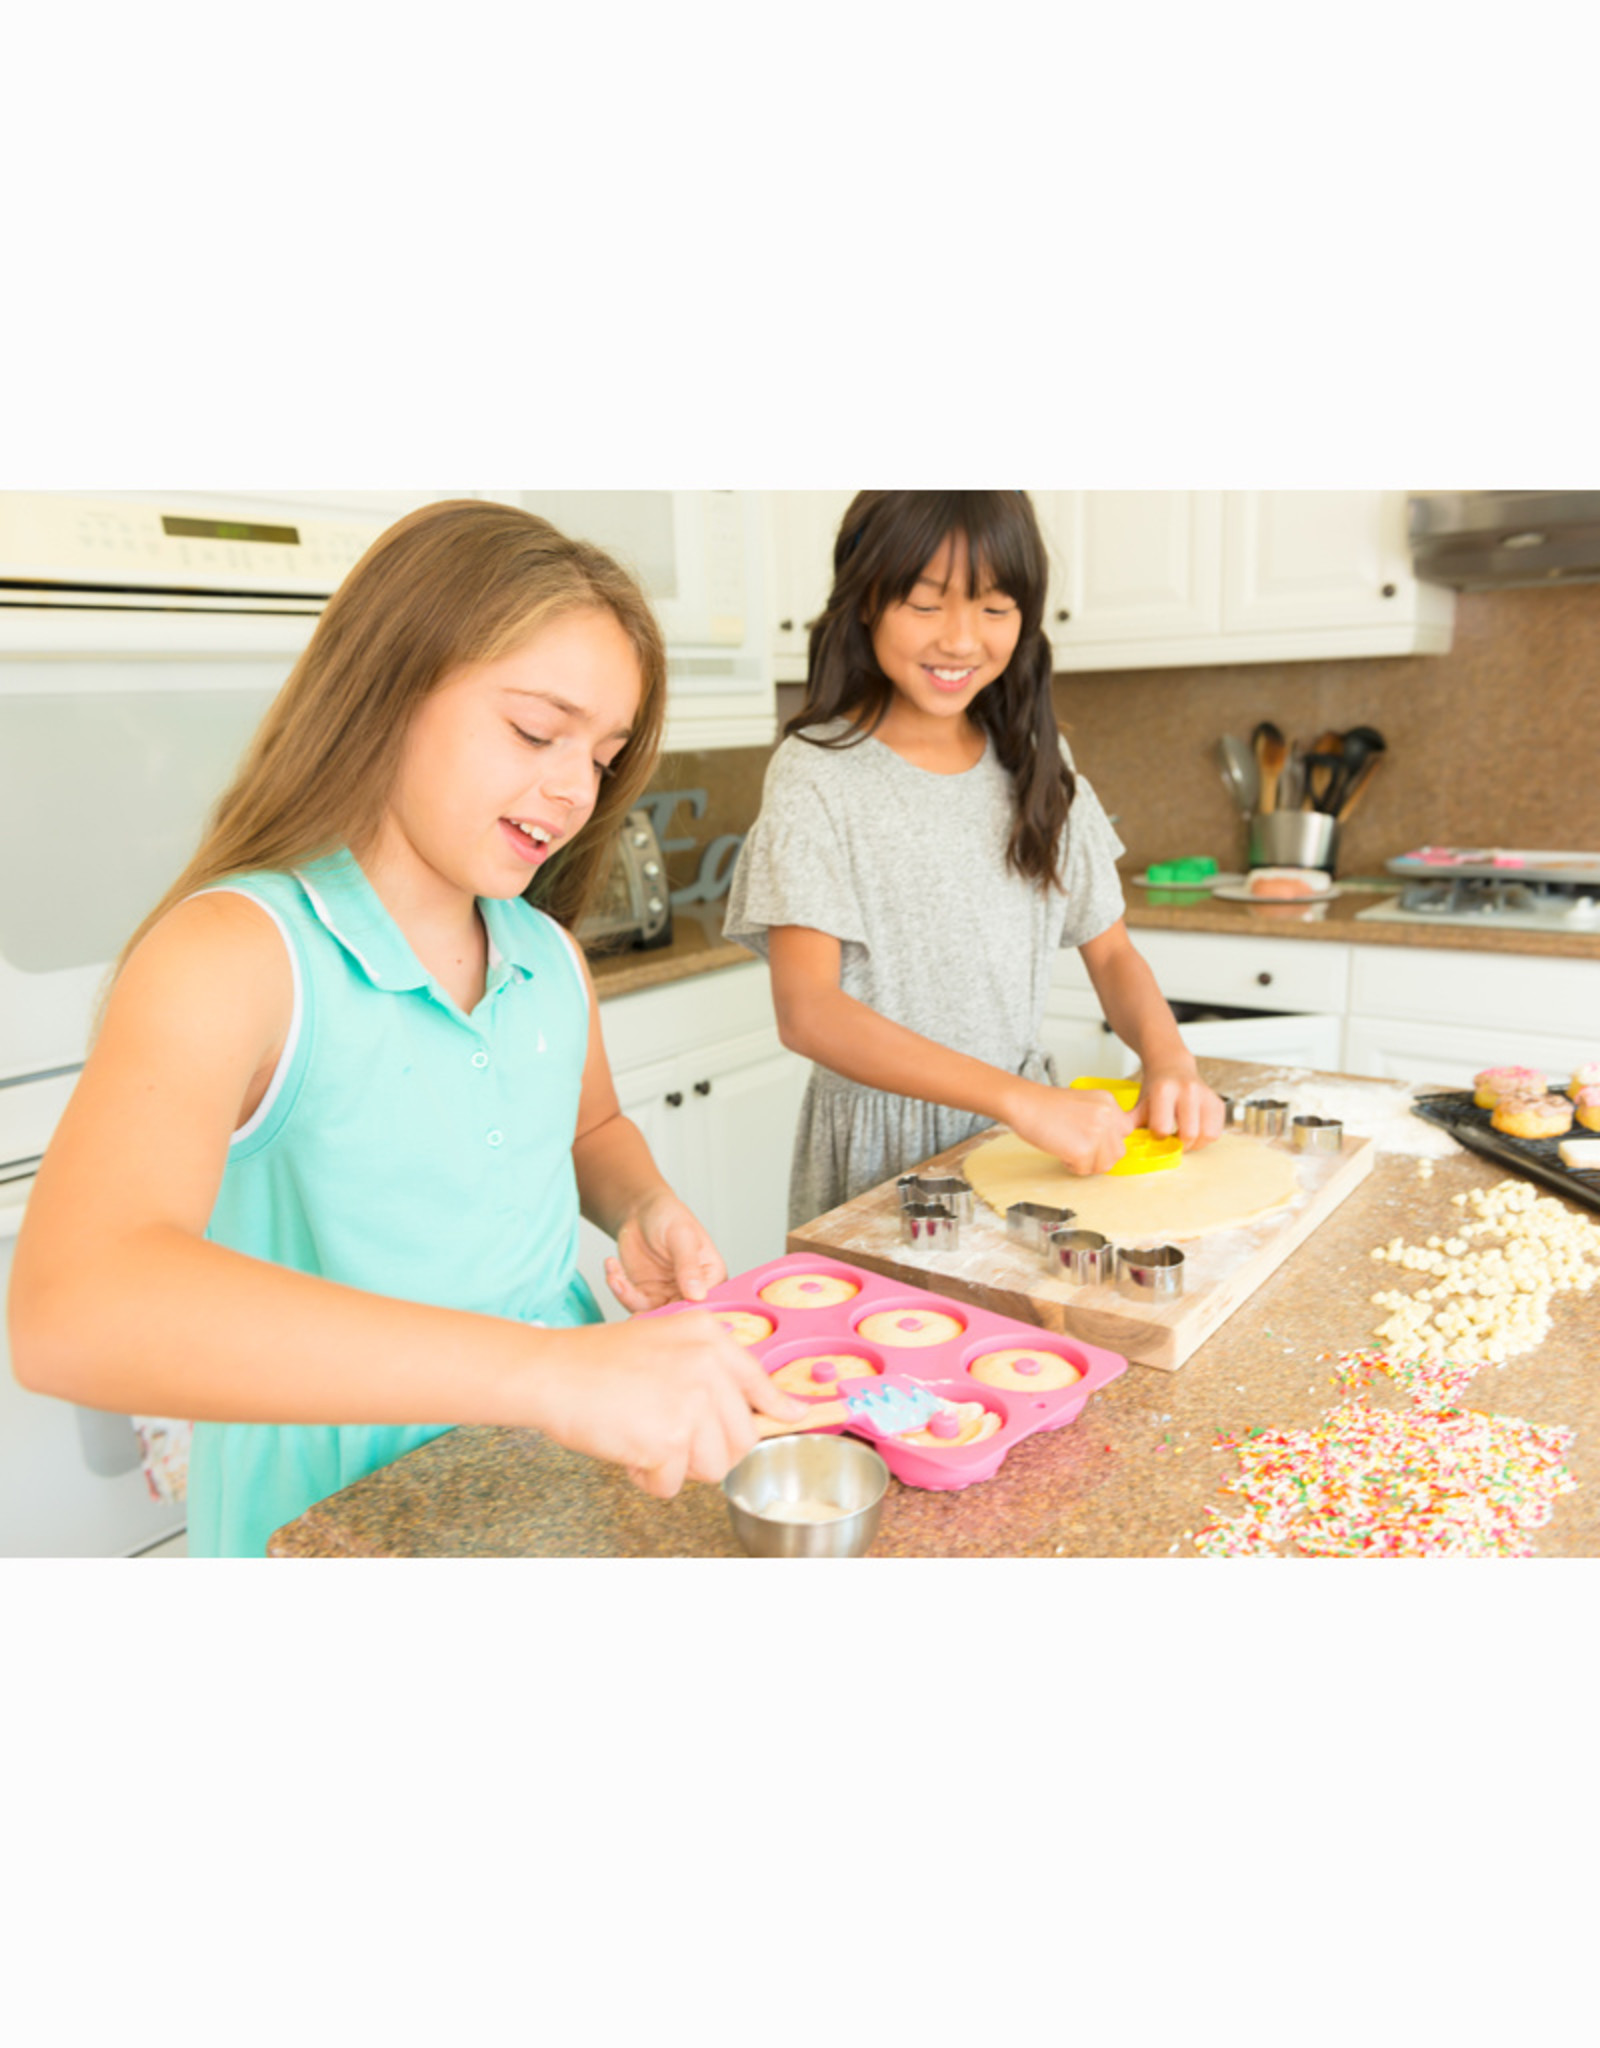 Handstand Kitchen Donut Baking Bundle: Donut Baking Party & Apron Set